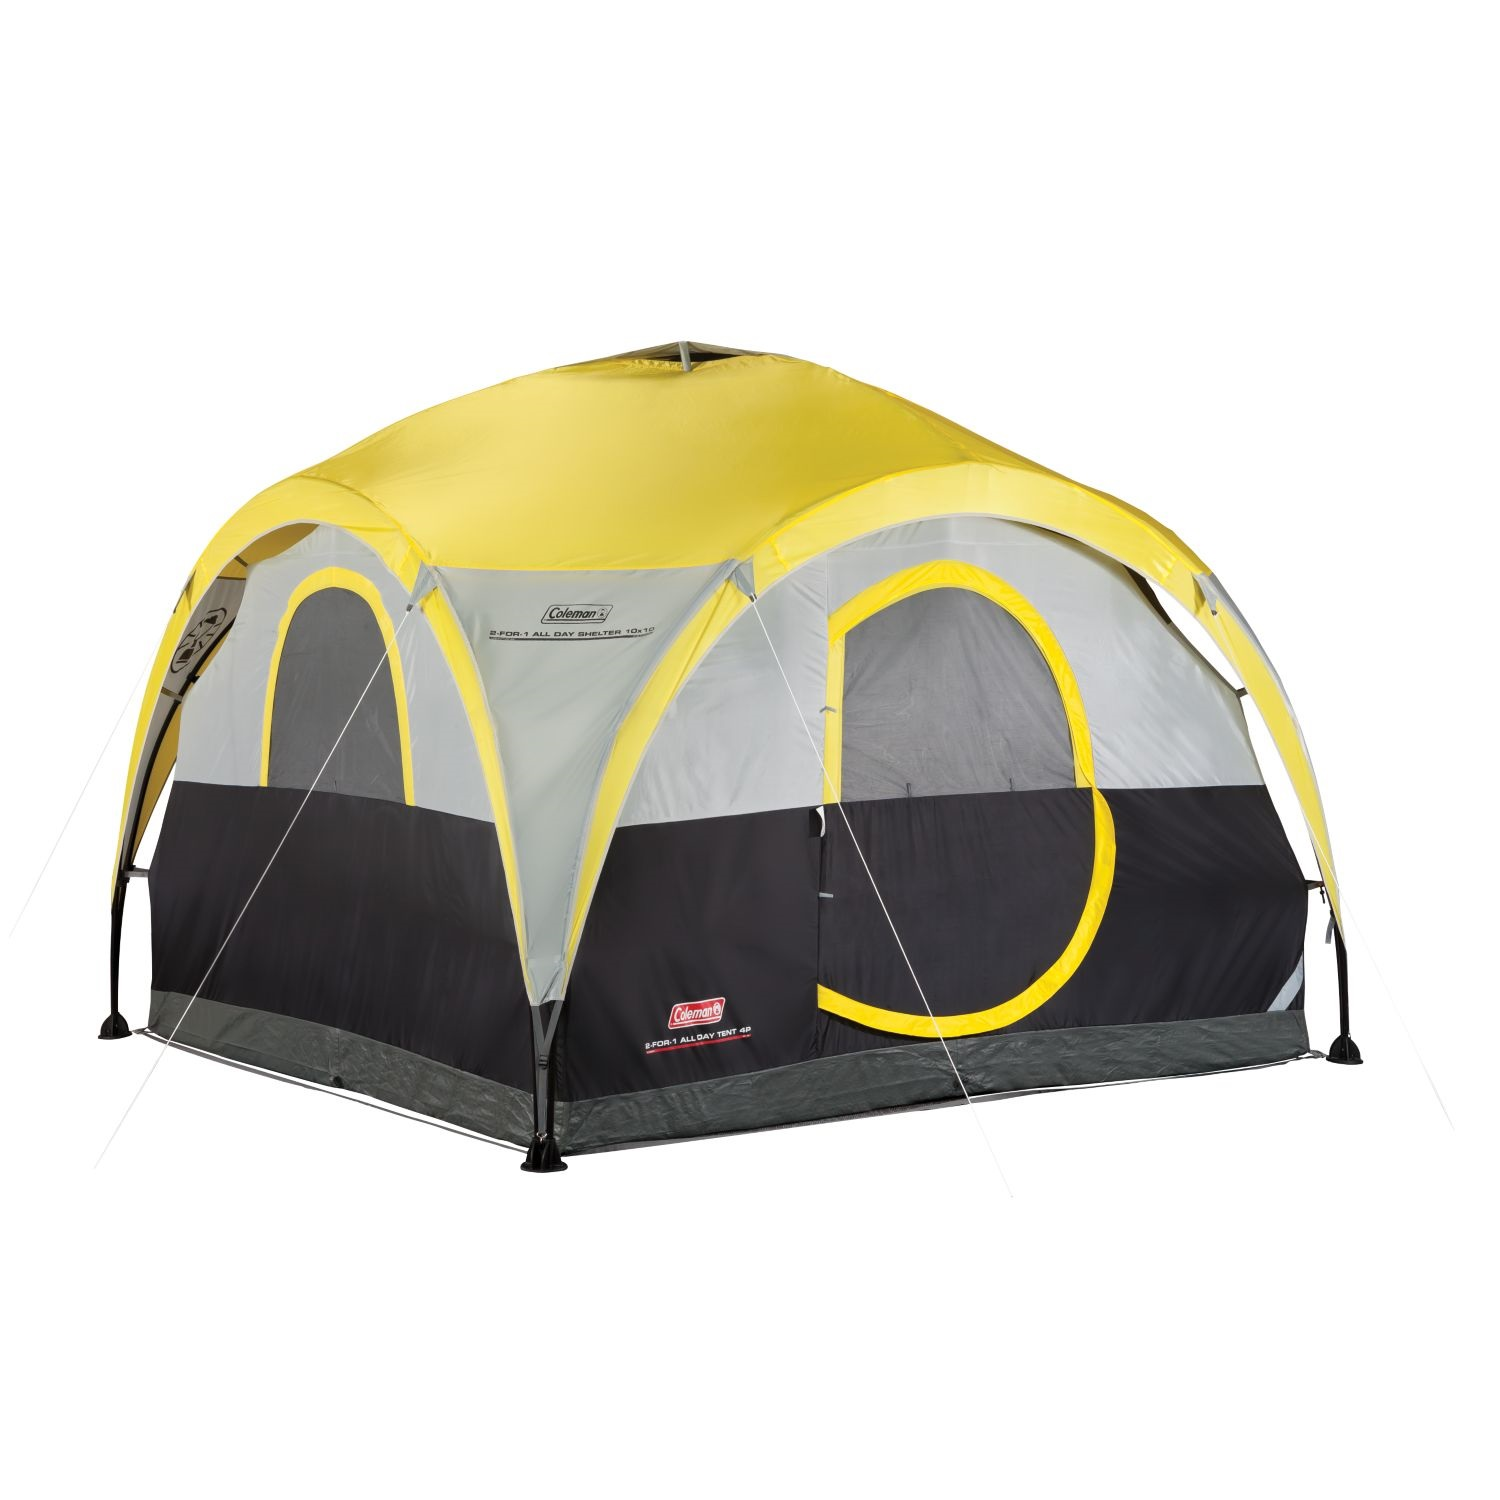 Porch Light Youth Shelter: Coleman All Day 4 Person 2-For-1 Dome Tent And Shelter